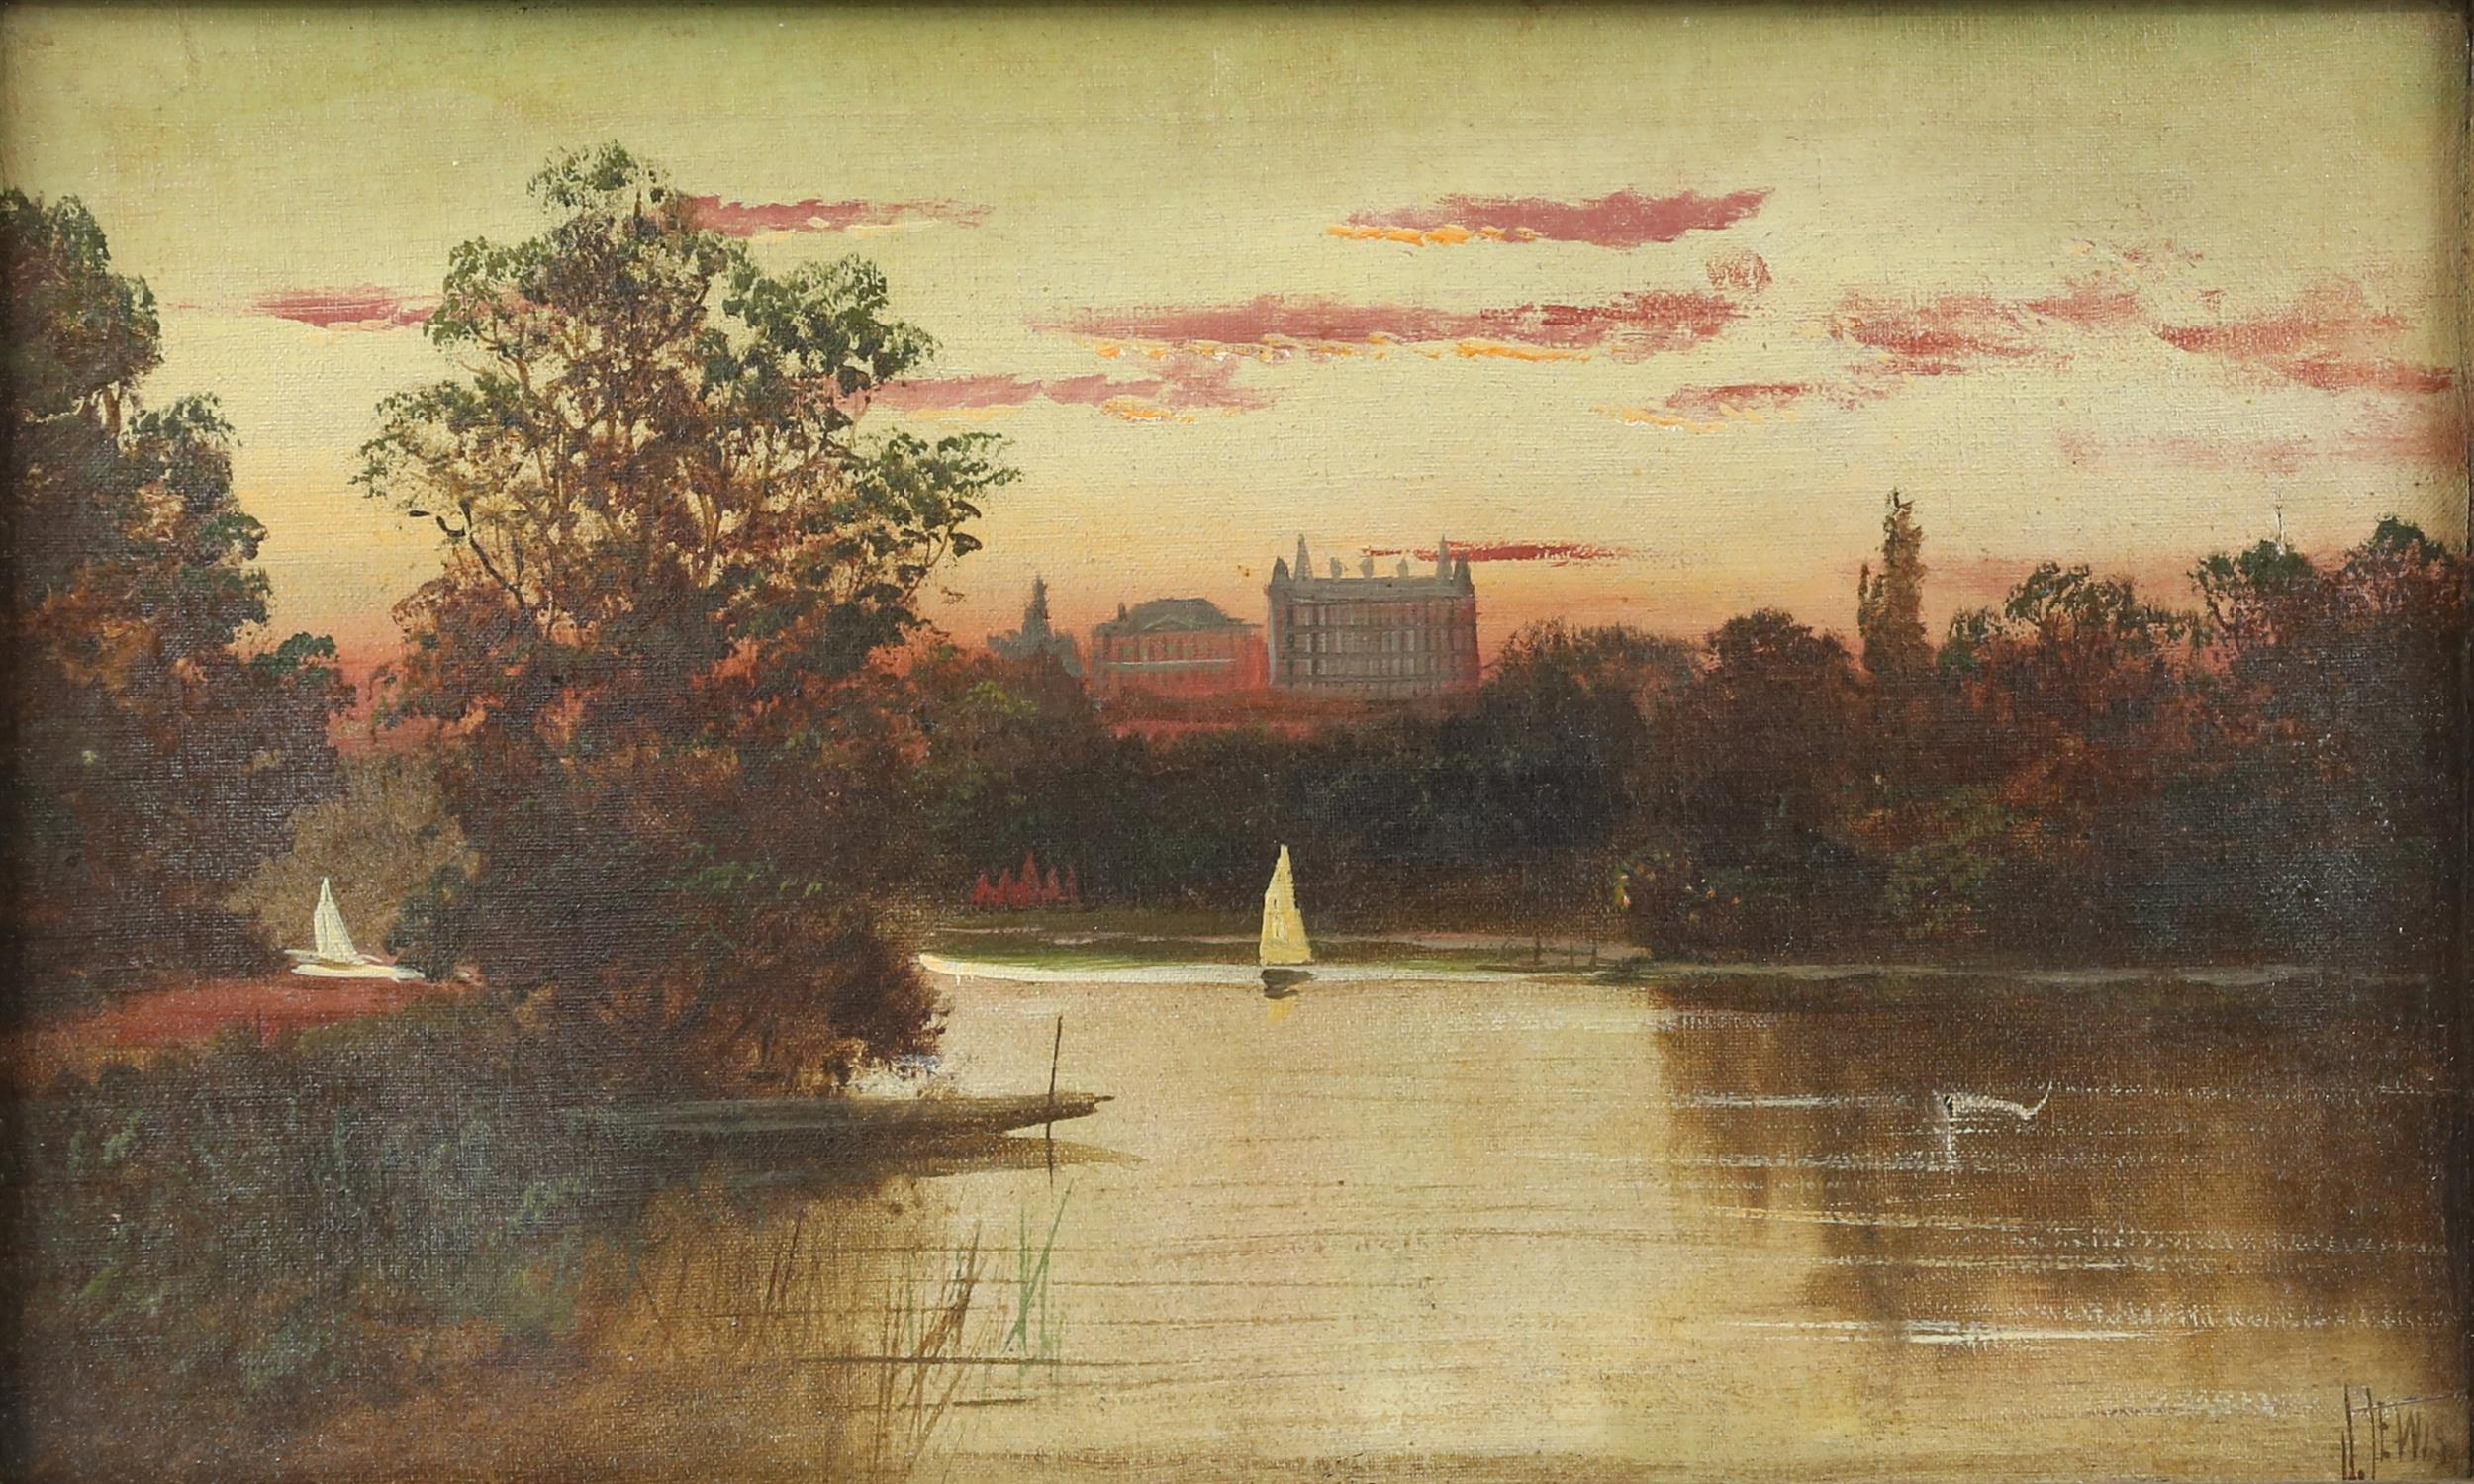 James Isiah Lewis (British, 1860-1934), Star and Garter, Richmond on Thames, View from Marble Hill